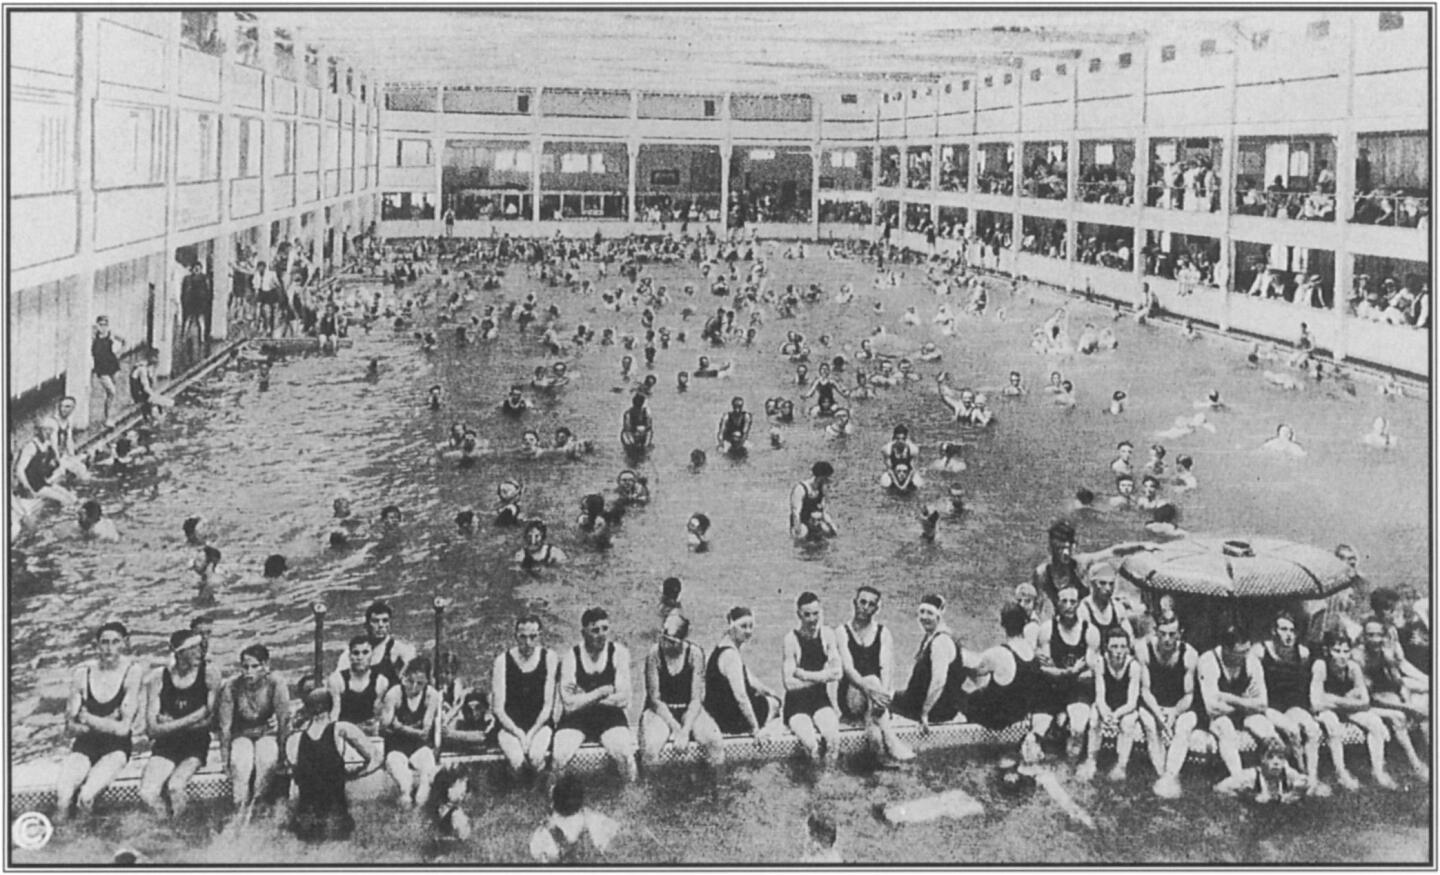 The expanse and the popularity of indoor pools are apparent in this postcard view of the Redondo Beach Plunge. Bathers in the foreground took time out from their sporting frolic to stare into the camera. Courtesy Arthur C. Verge.